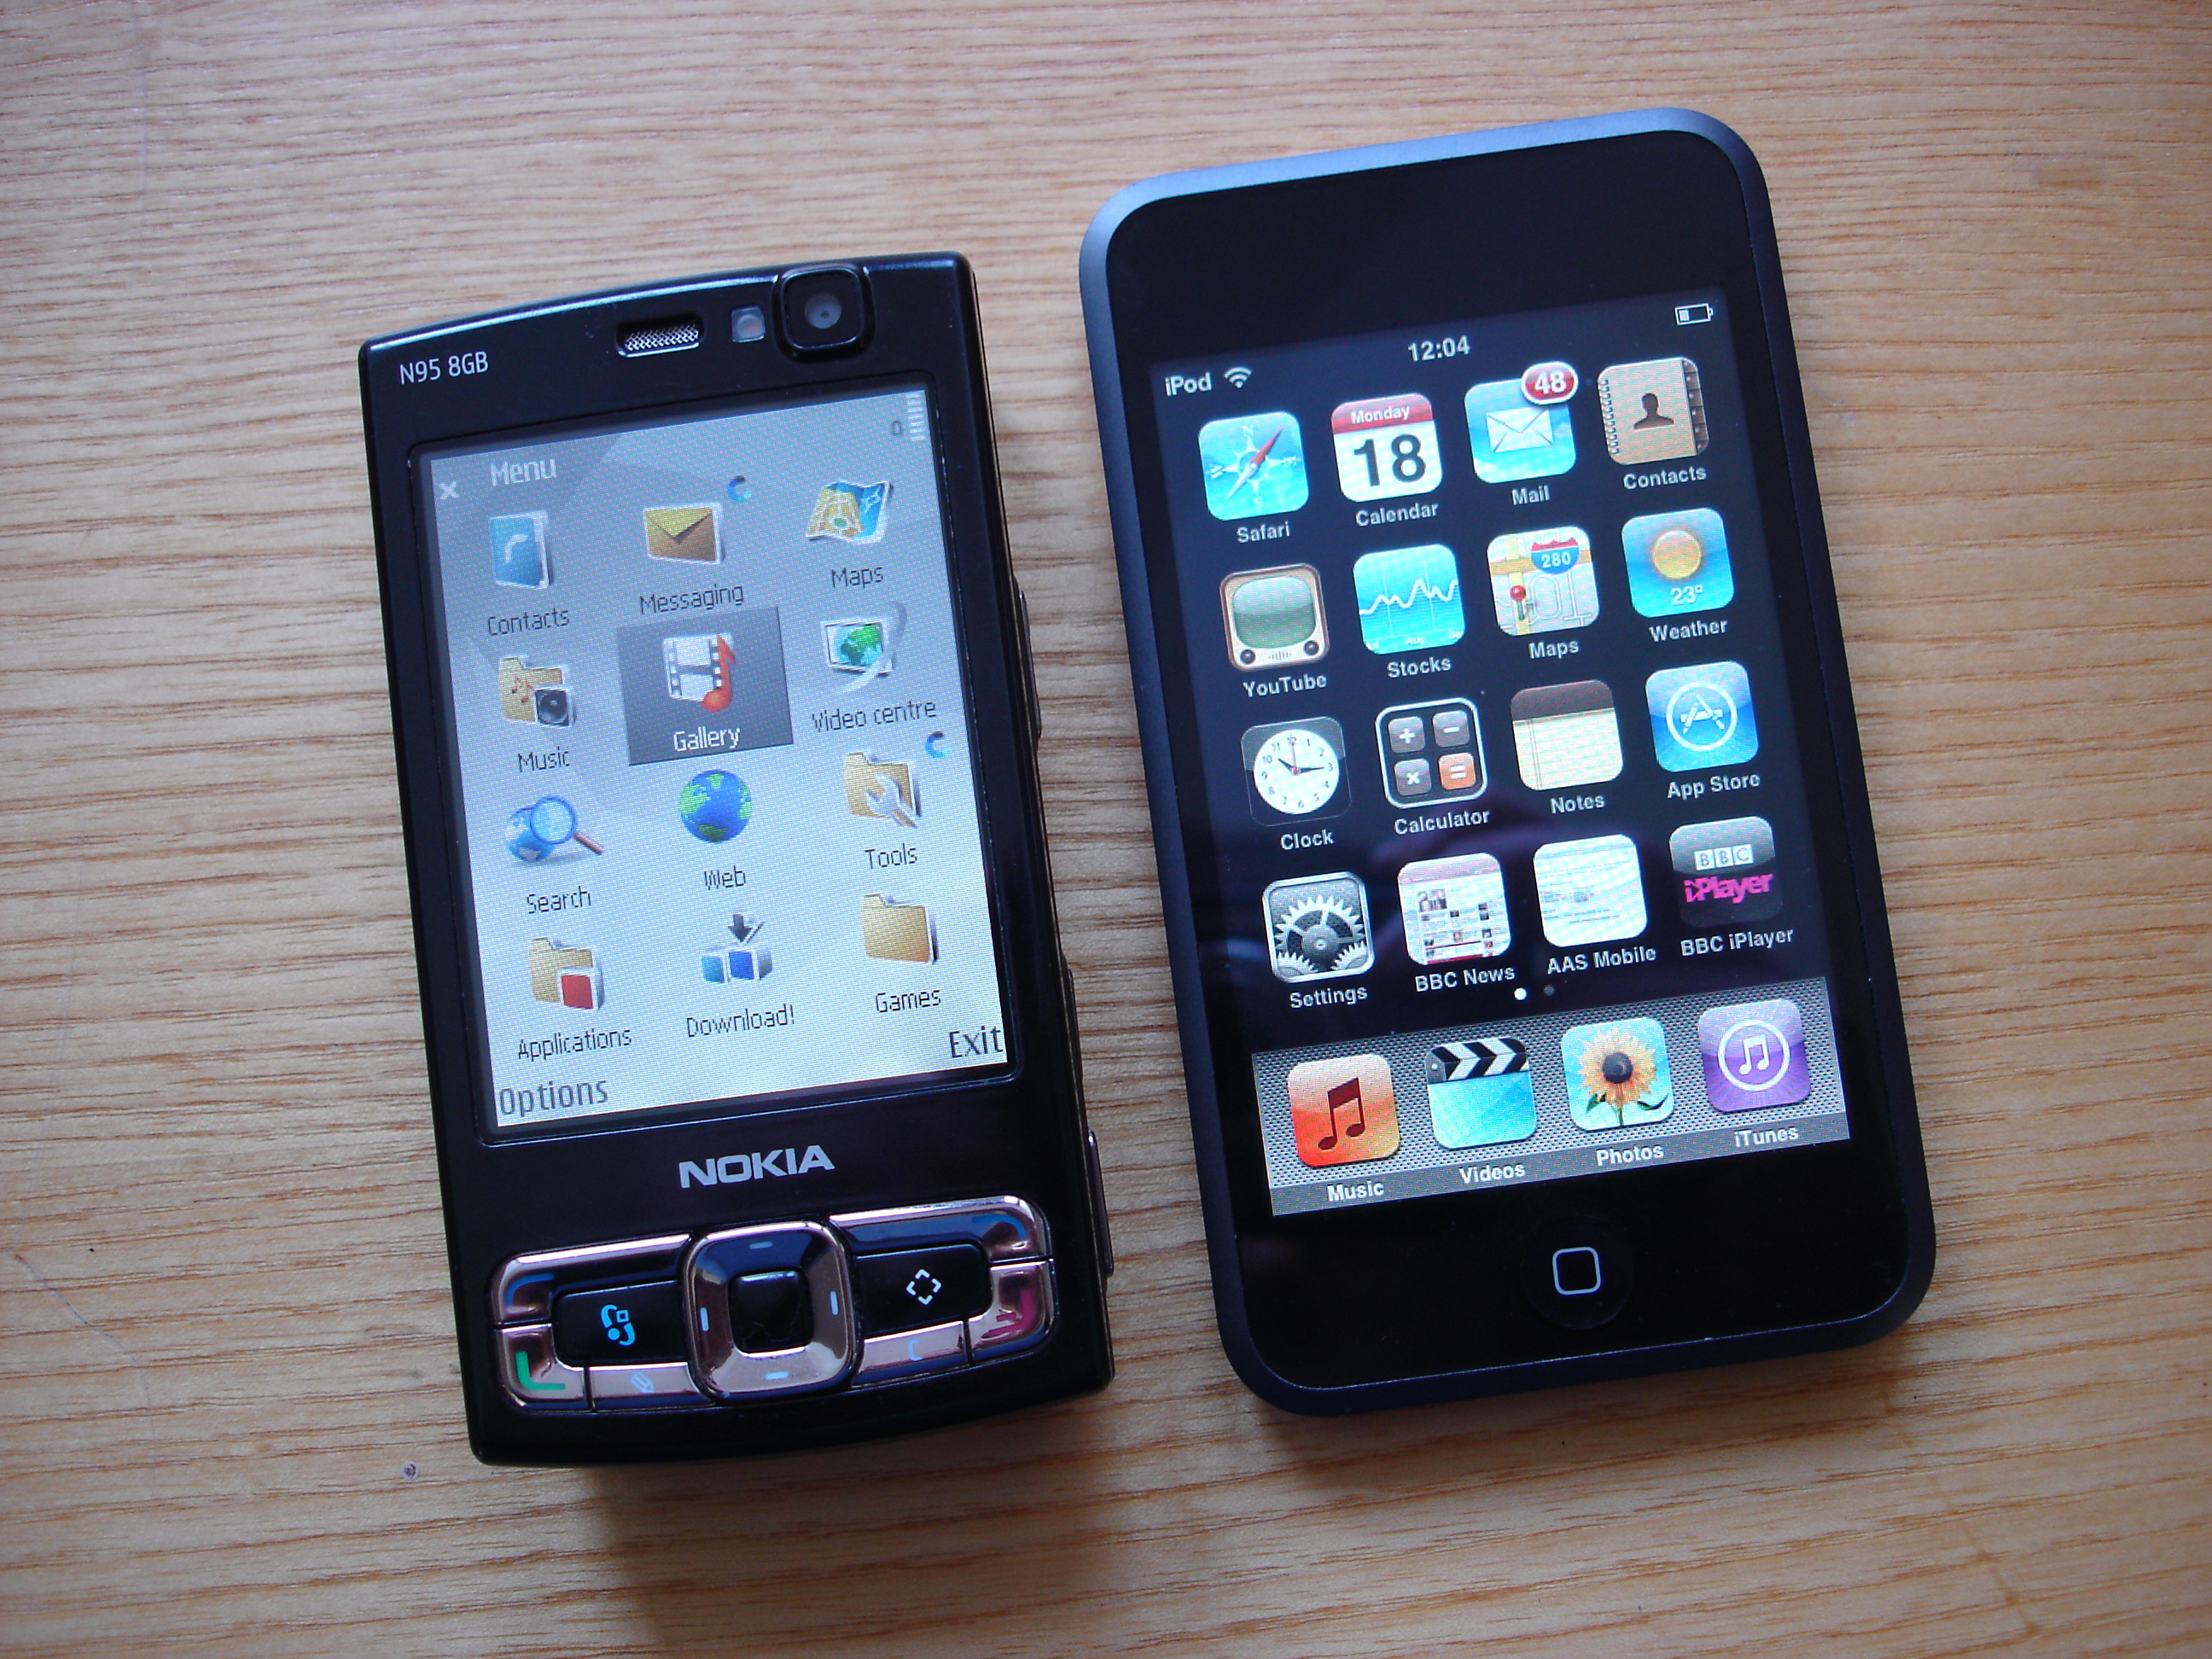 N95 8GB and iPhone/iPod